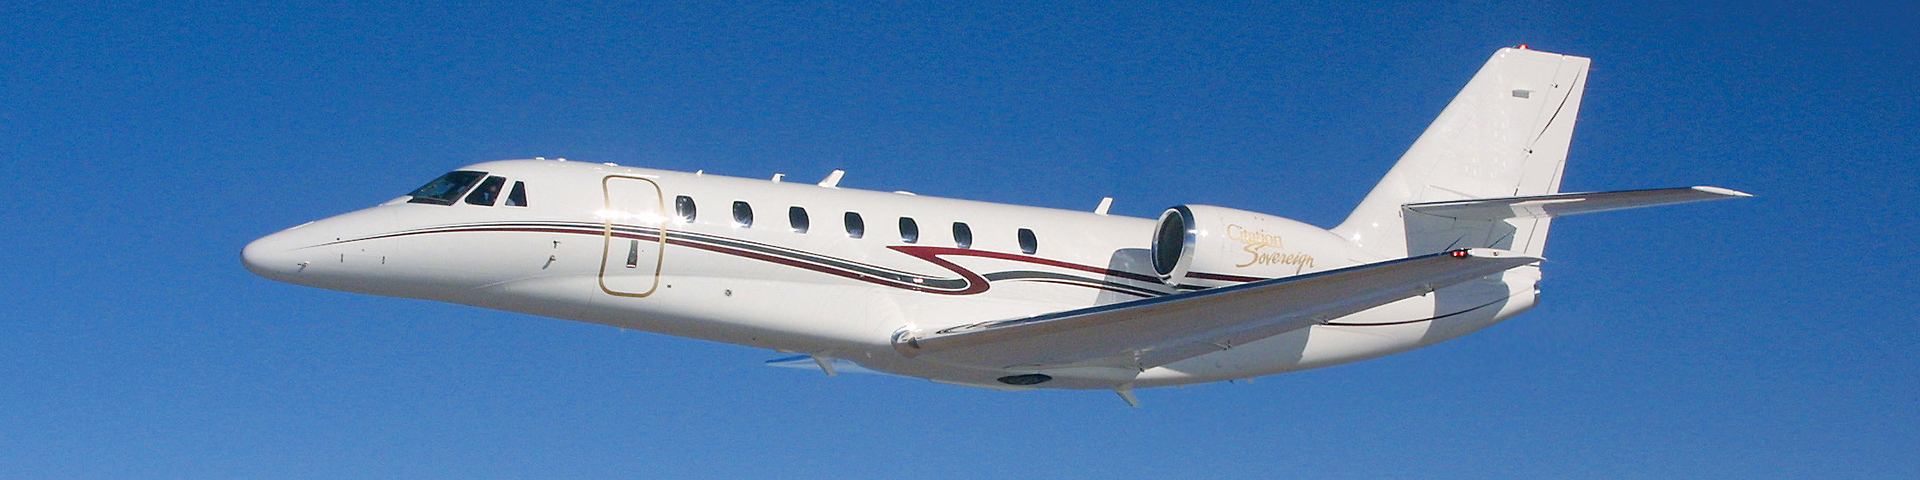 Cessna Citation Sovereign11 - Citation Sovereign Private Jet